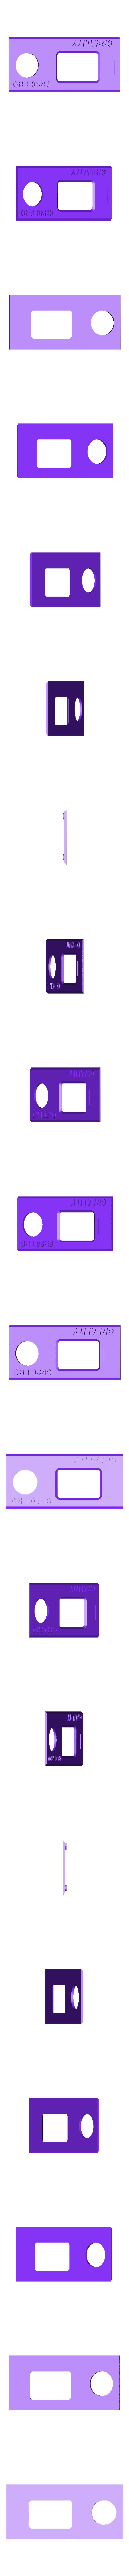 CREALITY_CR20PRO_LCD_COVER.stl Download free STL file CR20 / CR20 PRO LCD COVER • 3D printer object, GREGCAR_3DPrinting